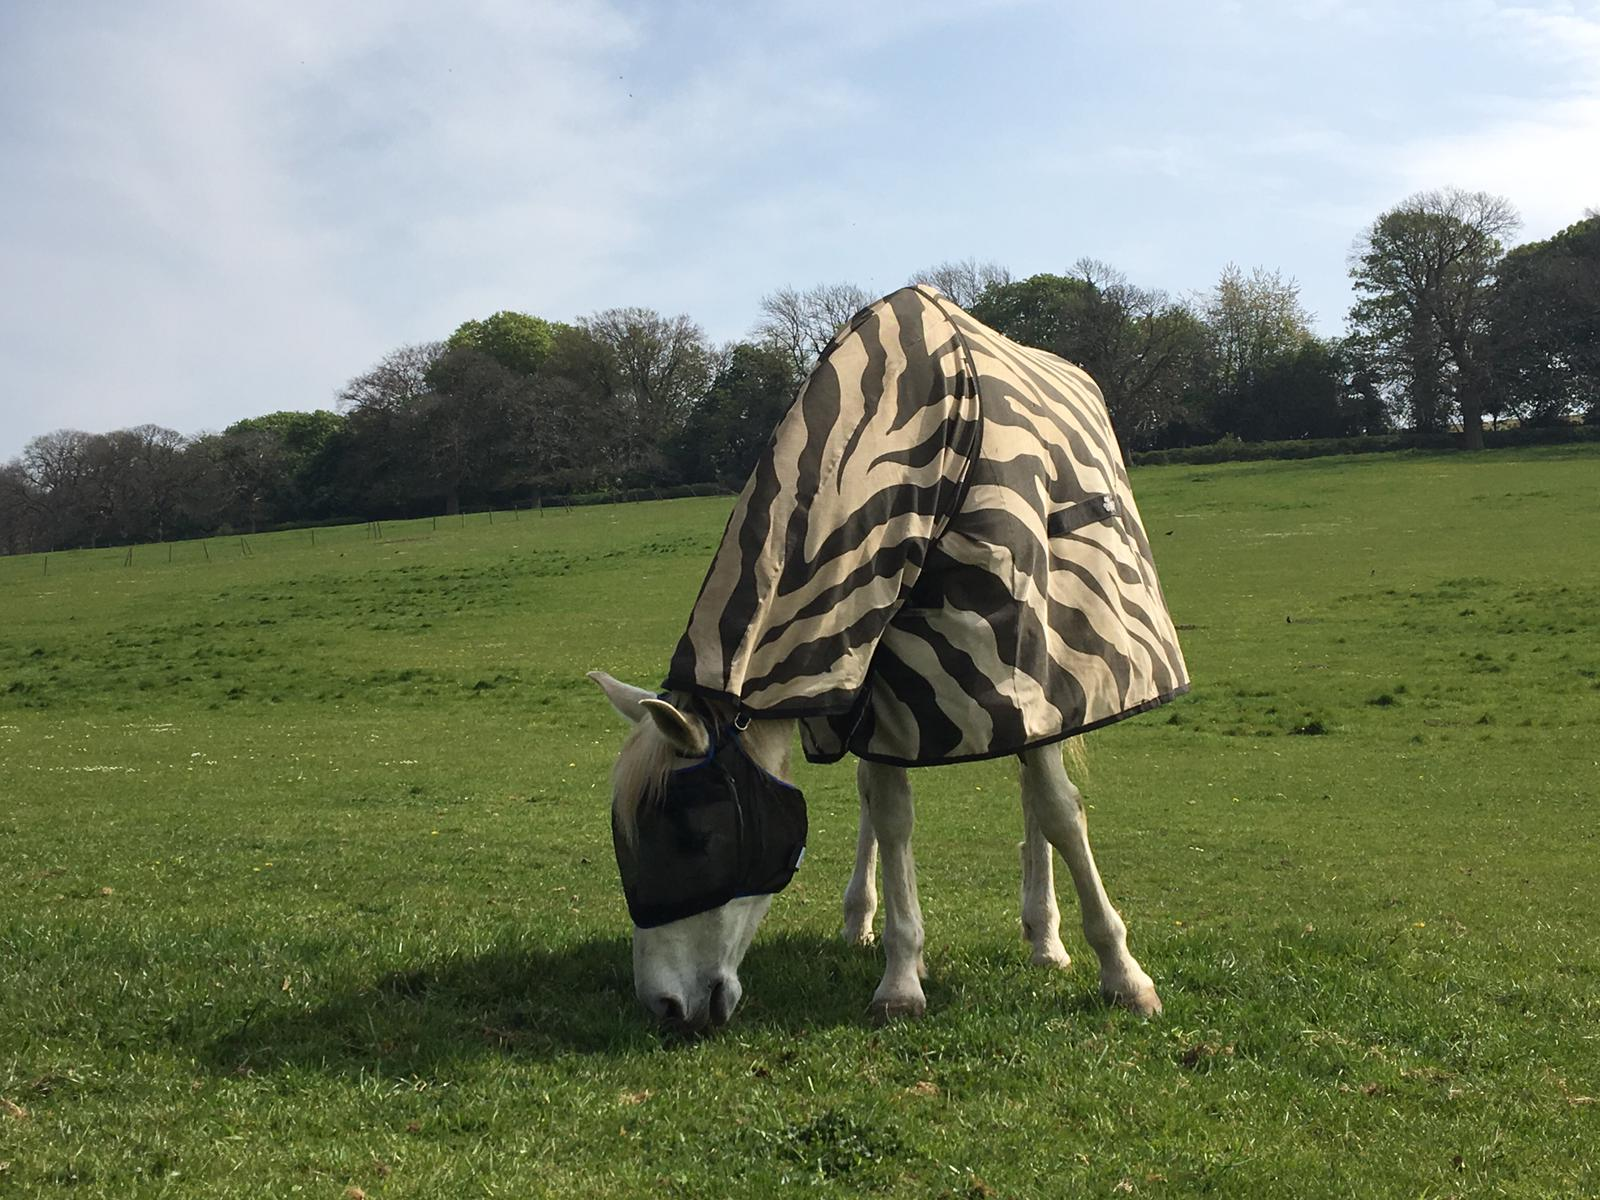 WAS ALEXANDER MCQUEEN INSPIRED BY THIS COOL HORSE WITH A FLY-MASK AND ZEBRA PRINT MAC?